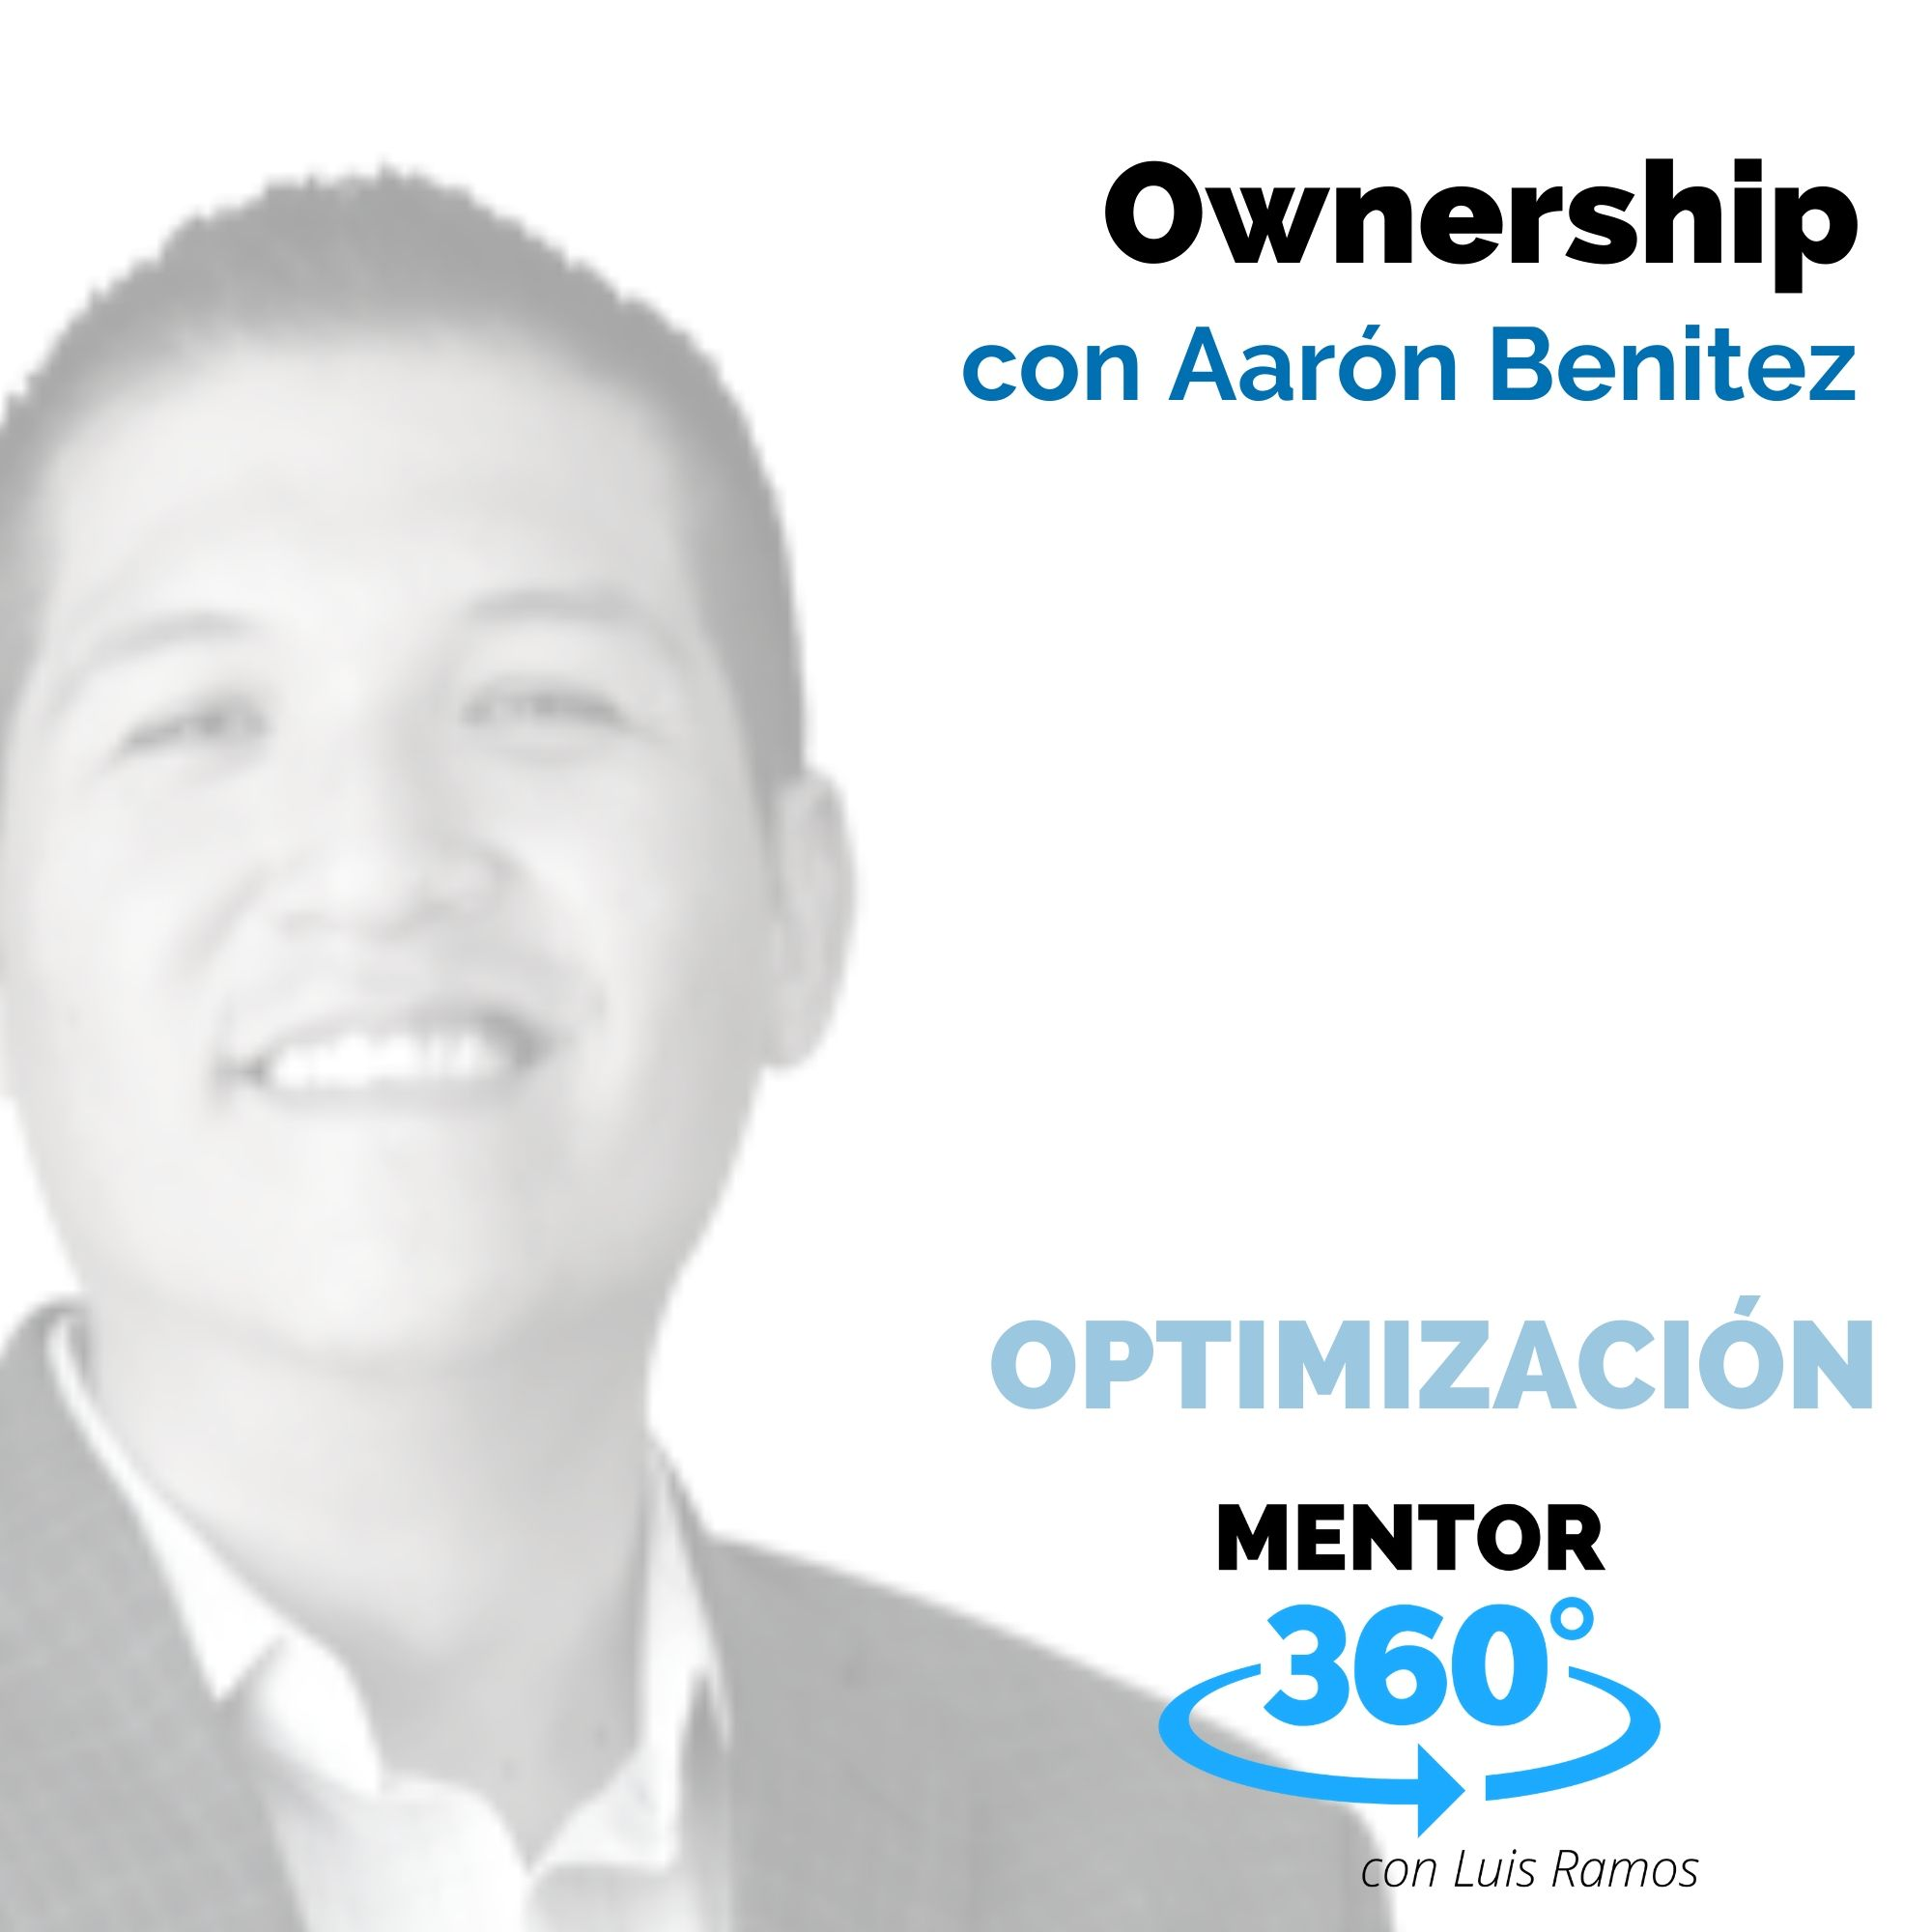 Ownership, con Aarón Benítez - OPTIMIZACIÓN